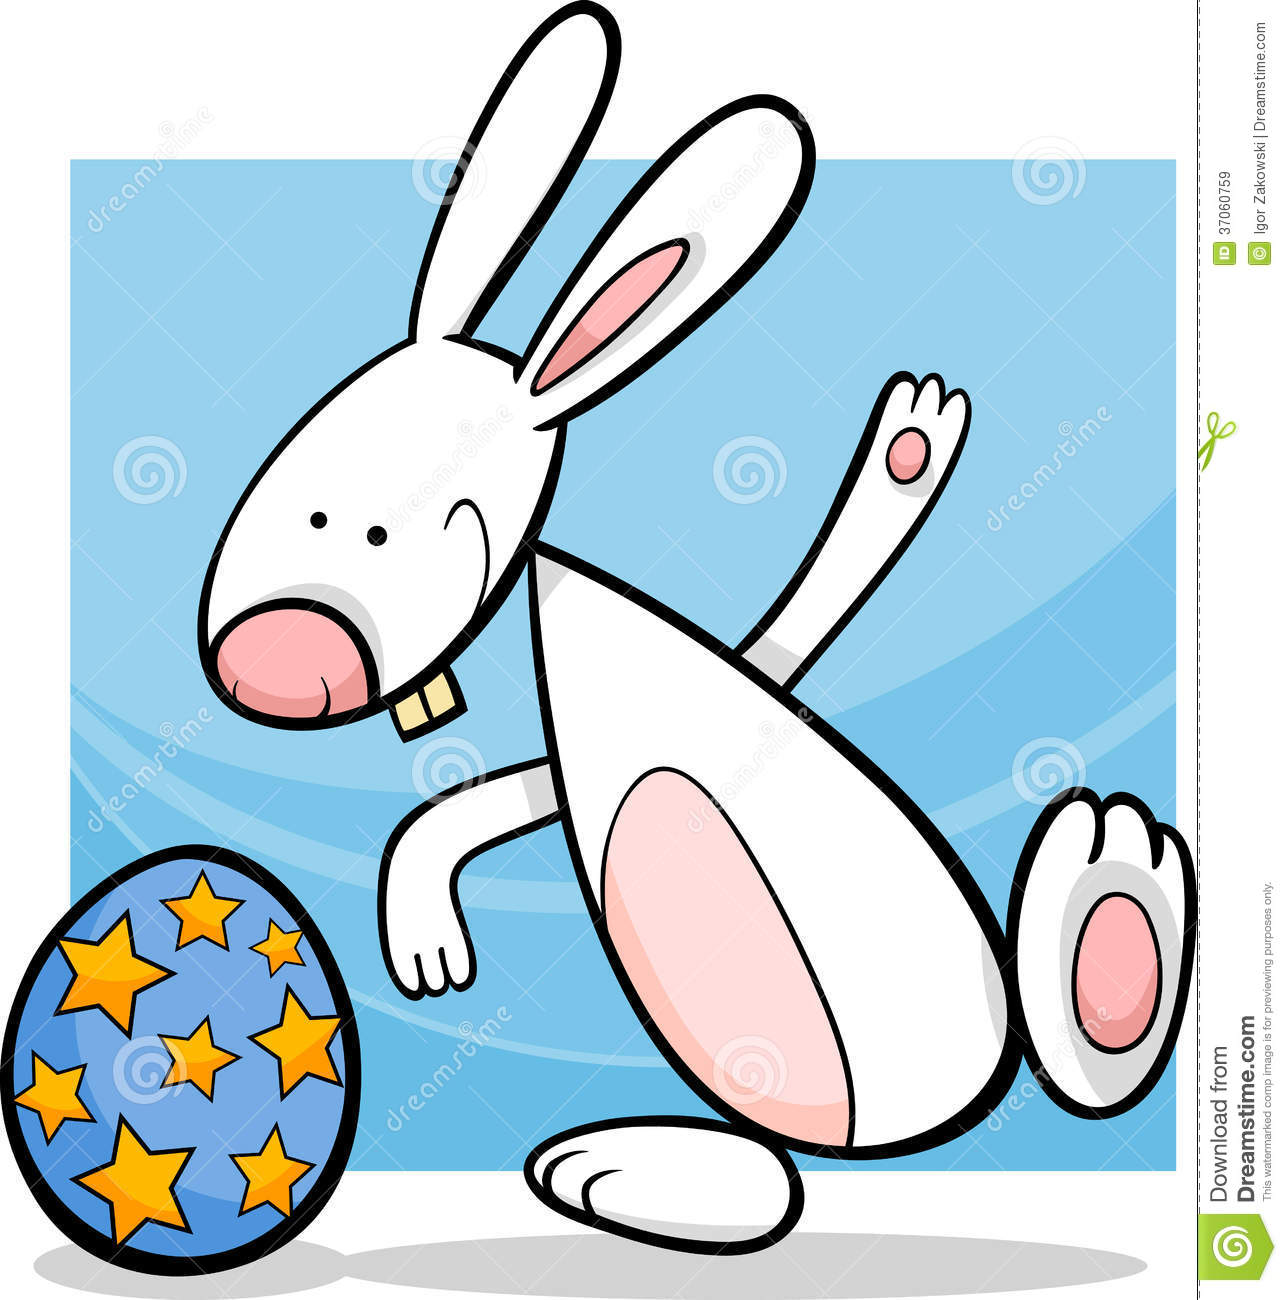 Funny Easter Bunny Cartoon Illustration Royalty Free Stock Images ...